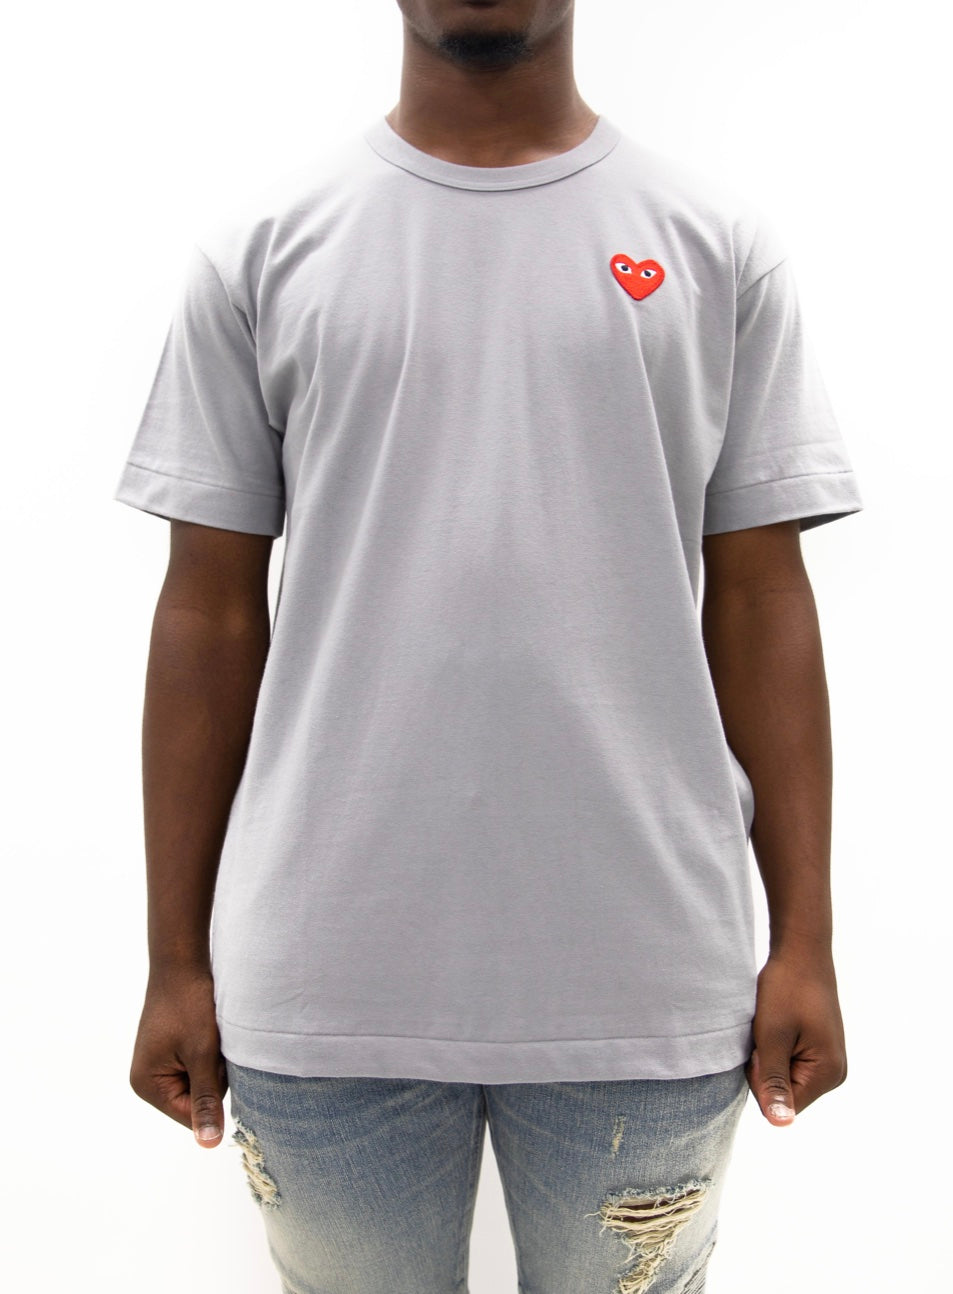 COMME des GARÇONS PLAY | Play Color Series T-Shirt Red Heart (Grey)